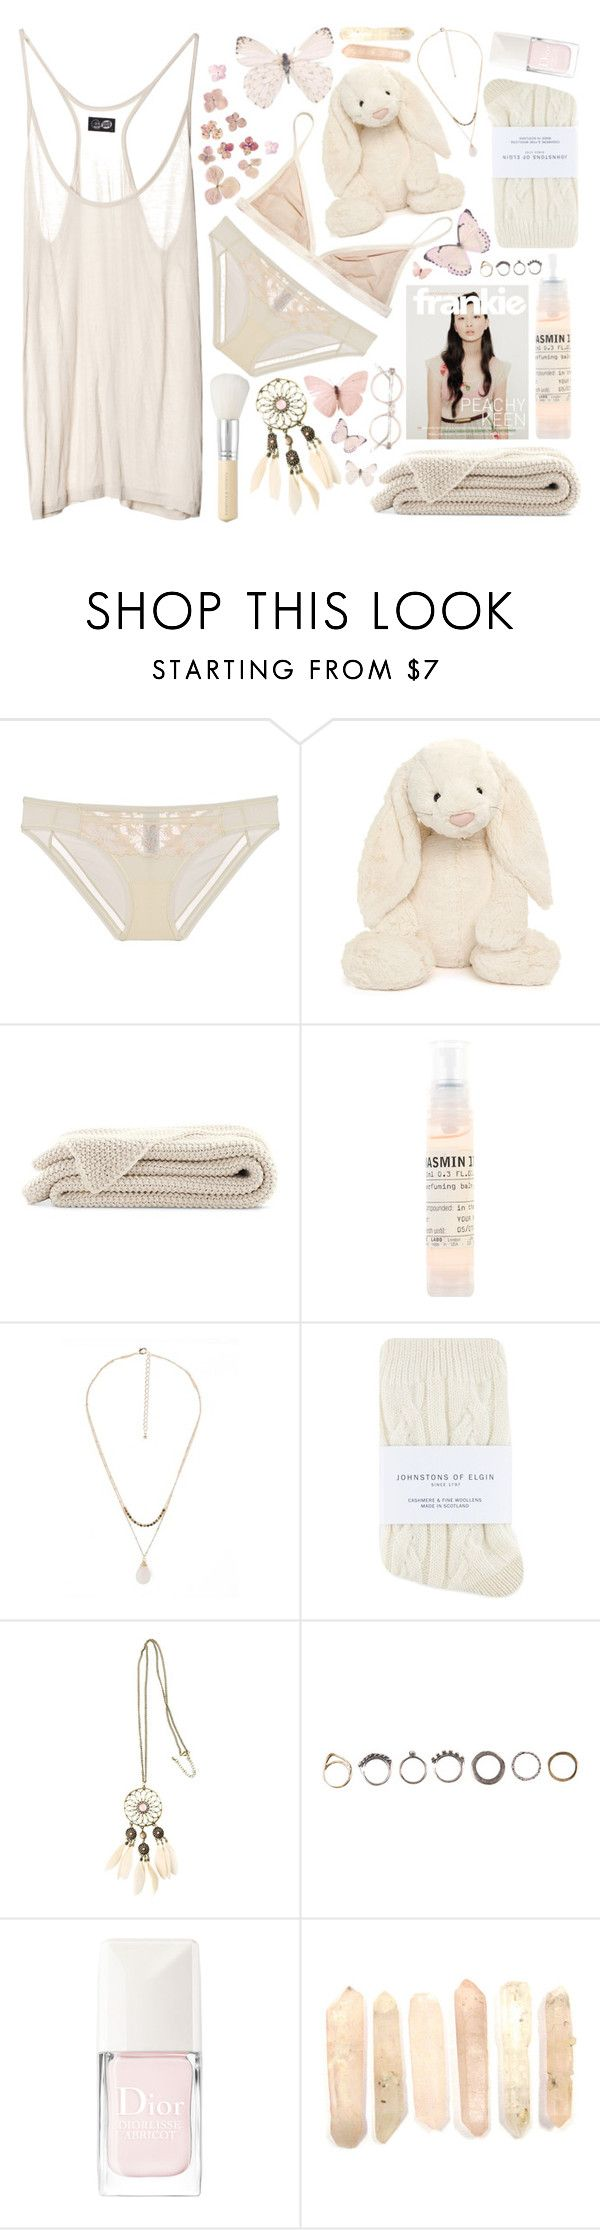 """Outfit 137~Lazy day~READ DESCRIPTION //Tag"" by holass ❤ liked on Polyvore featuring Cheap Monday, Calvin Klein Underwear, Jellycat, Le Labo, MANGO, Johnstons, H&M, Iosselliani, Christian Dior and Bare Escentuals"